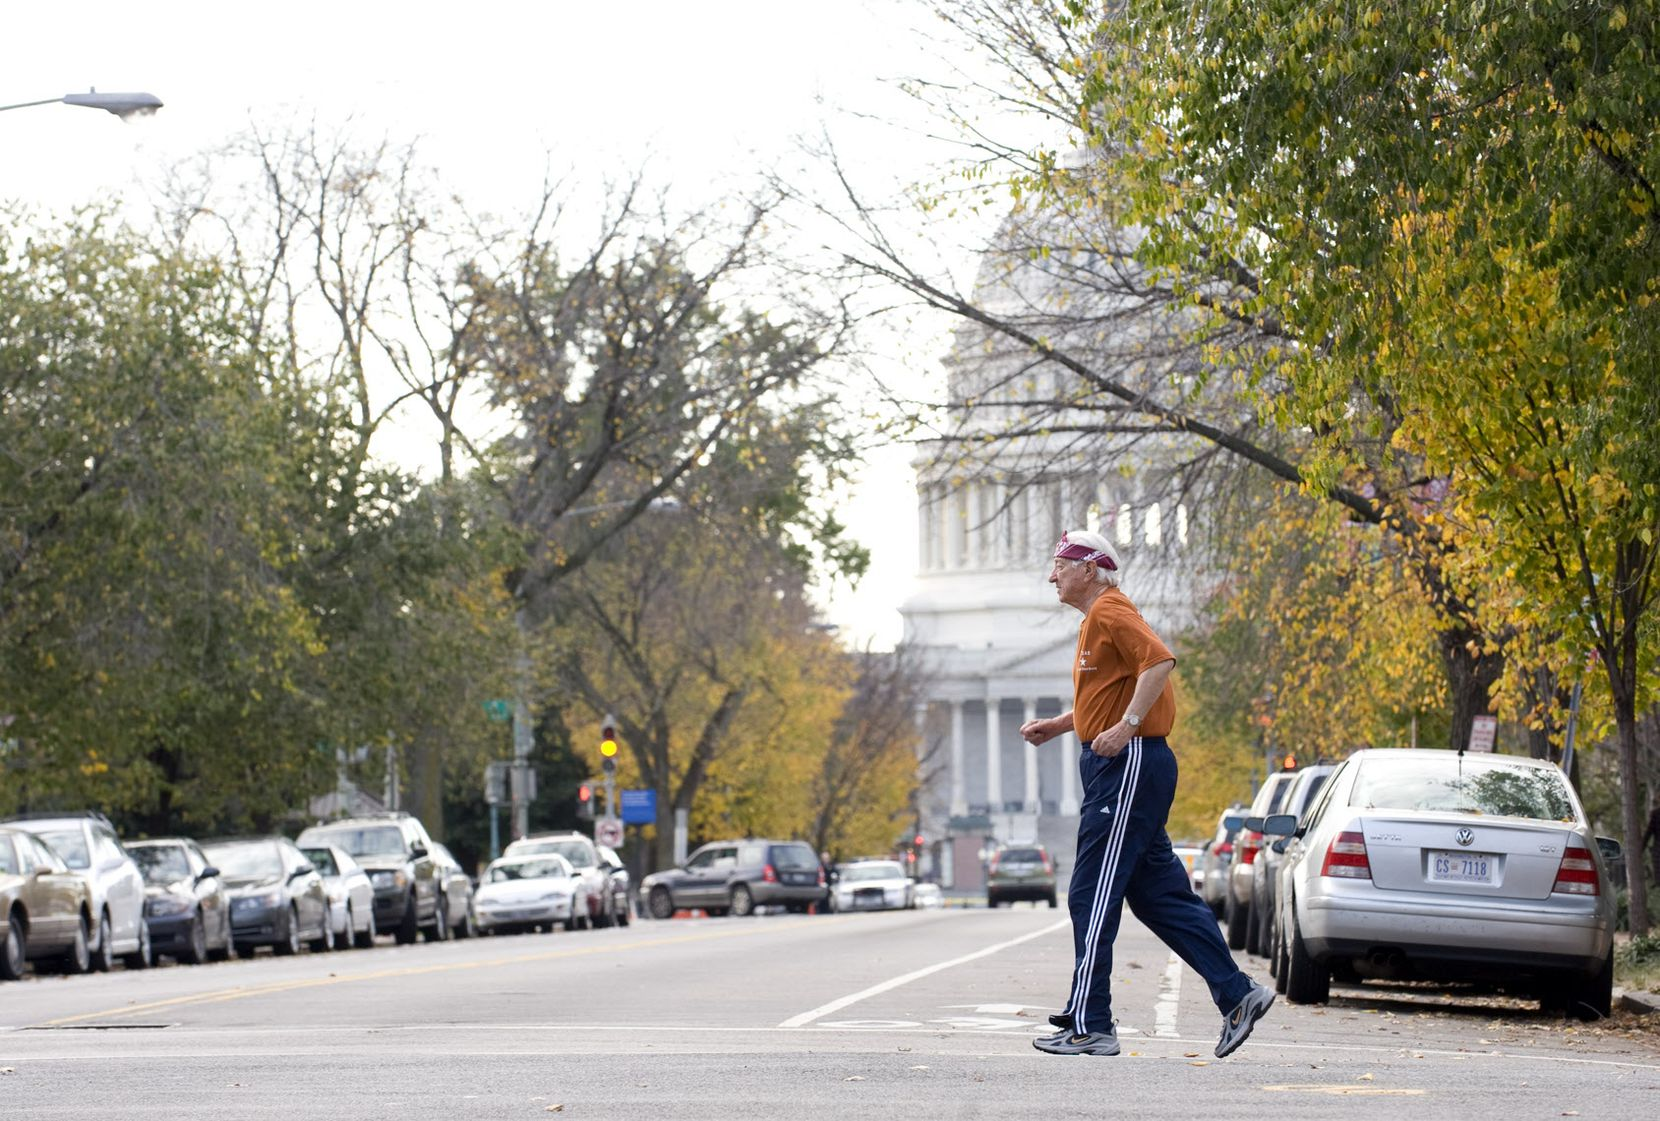 Rep. Ralph Hall, age 86, took his more than 3-mile daily jog from his house on Capitol Hill to RFK Stadium and back on Nov. 2, 2009.